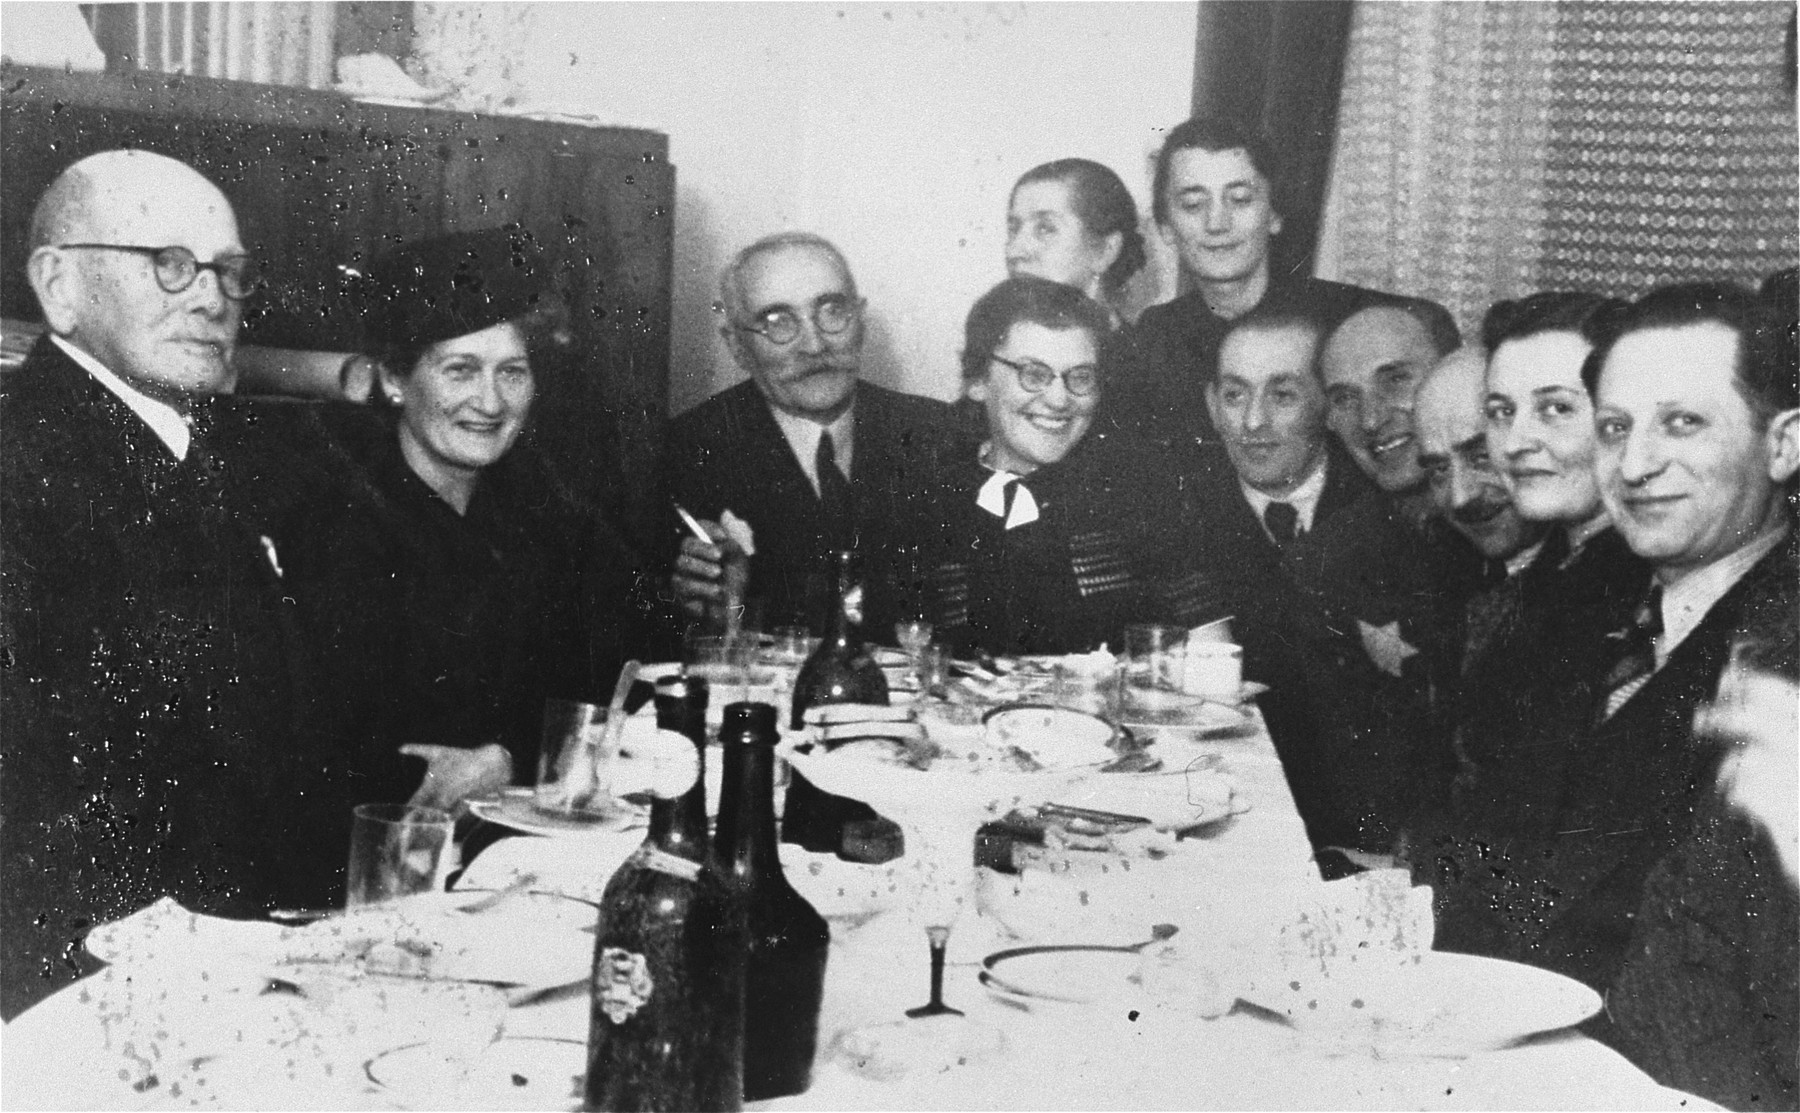 Wedding celebration of Manya Milderman Praszker and Baruch Praszker in the Lodz ghetto.  The bride and groom are seated at the head of the table.  Baruch's mother, Chaia Esther Praszker is behind Mania and next to her is Mania's sister, Ruth Milderman Praszker.  Baruch Praszker was a leader of the religious Zionists and head of the cemetery department in the ghetto.